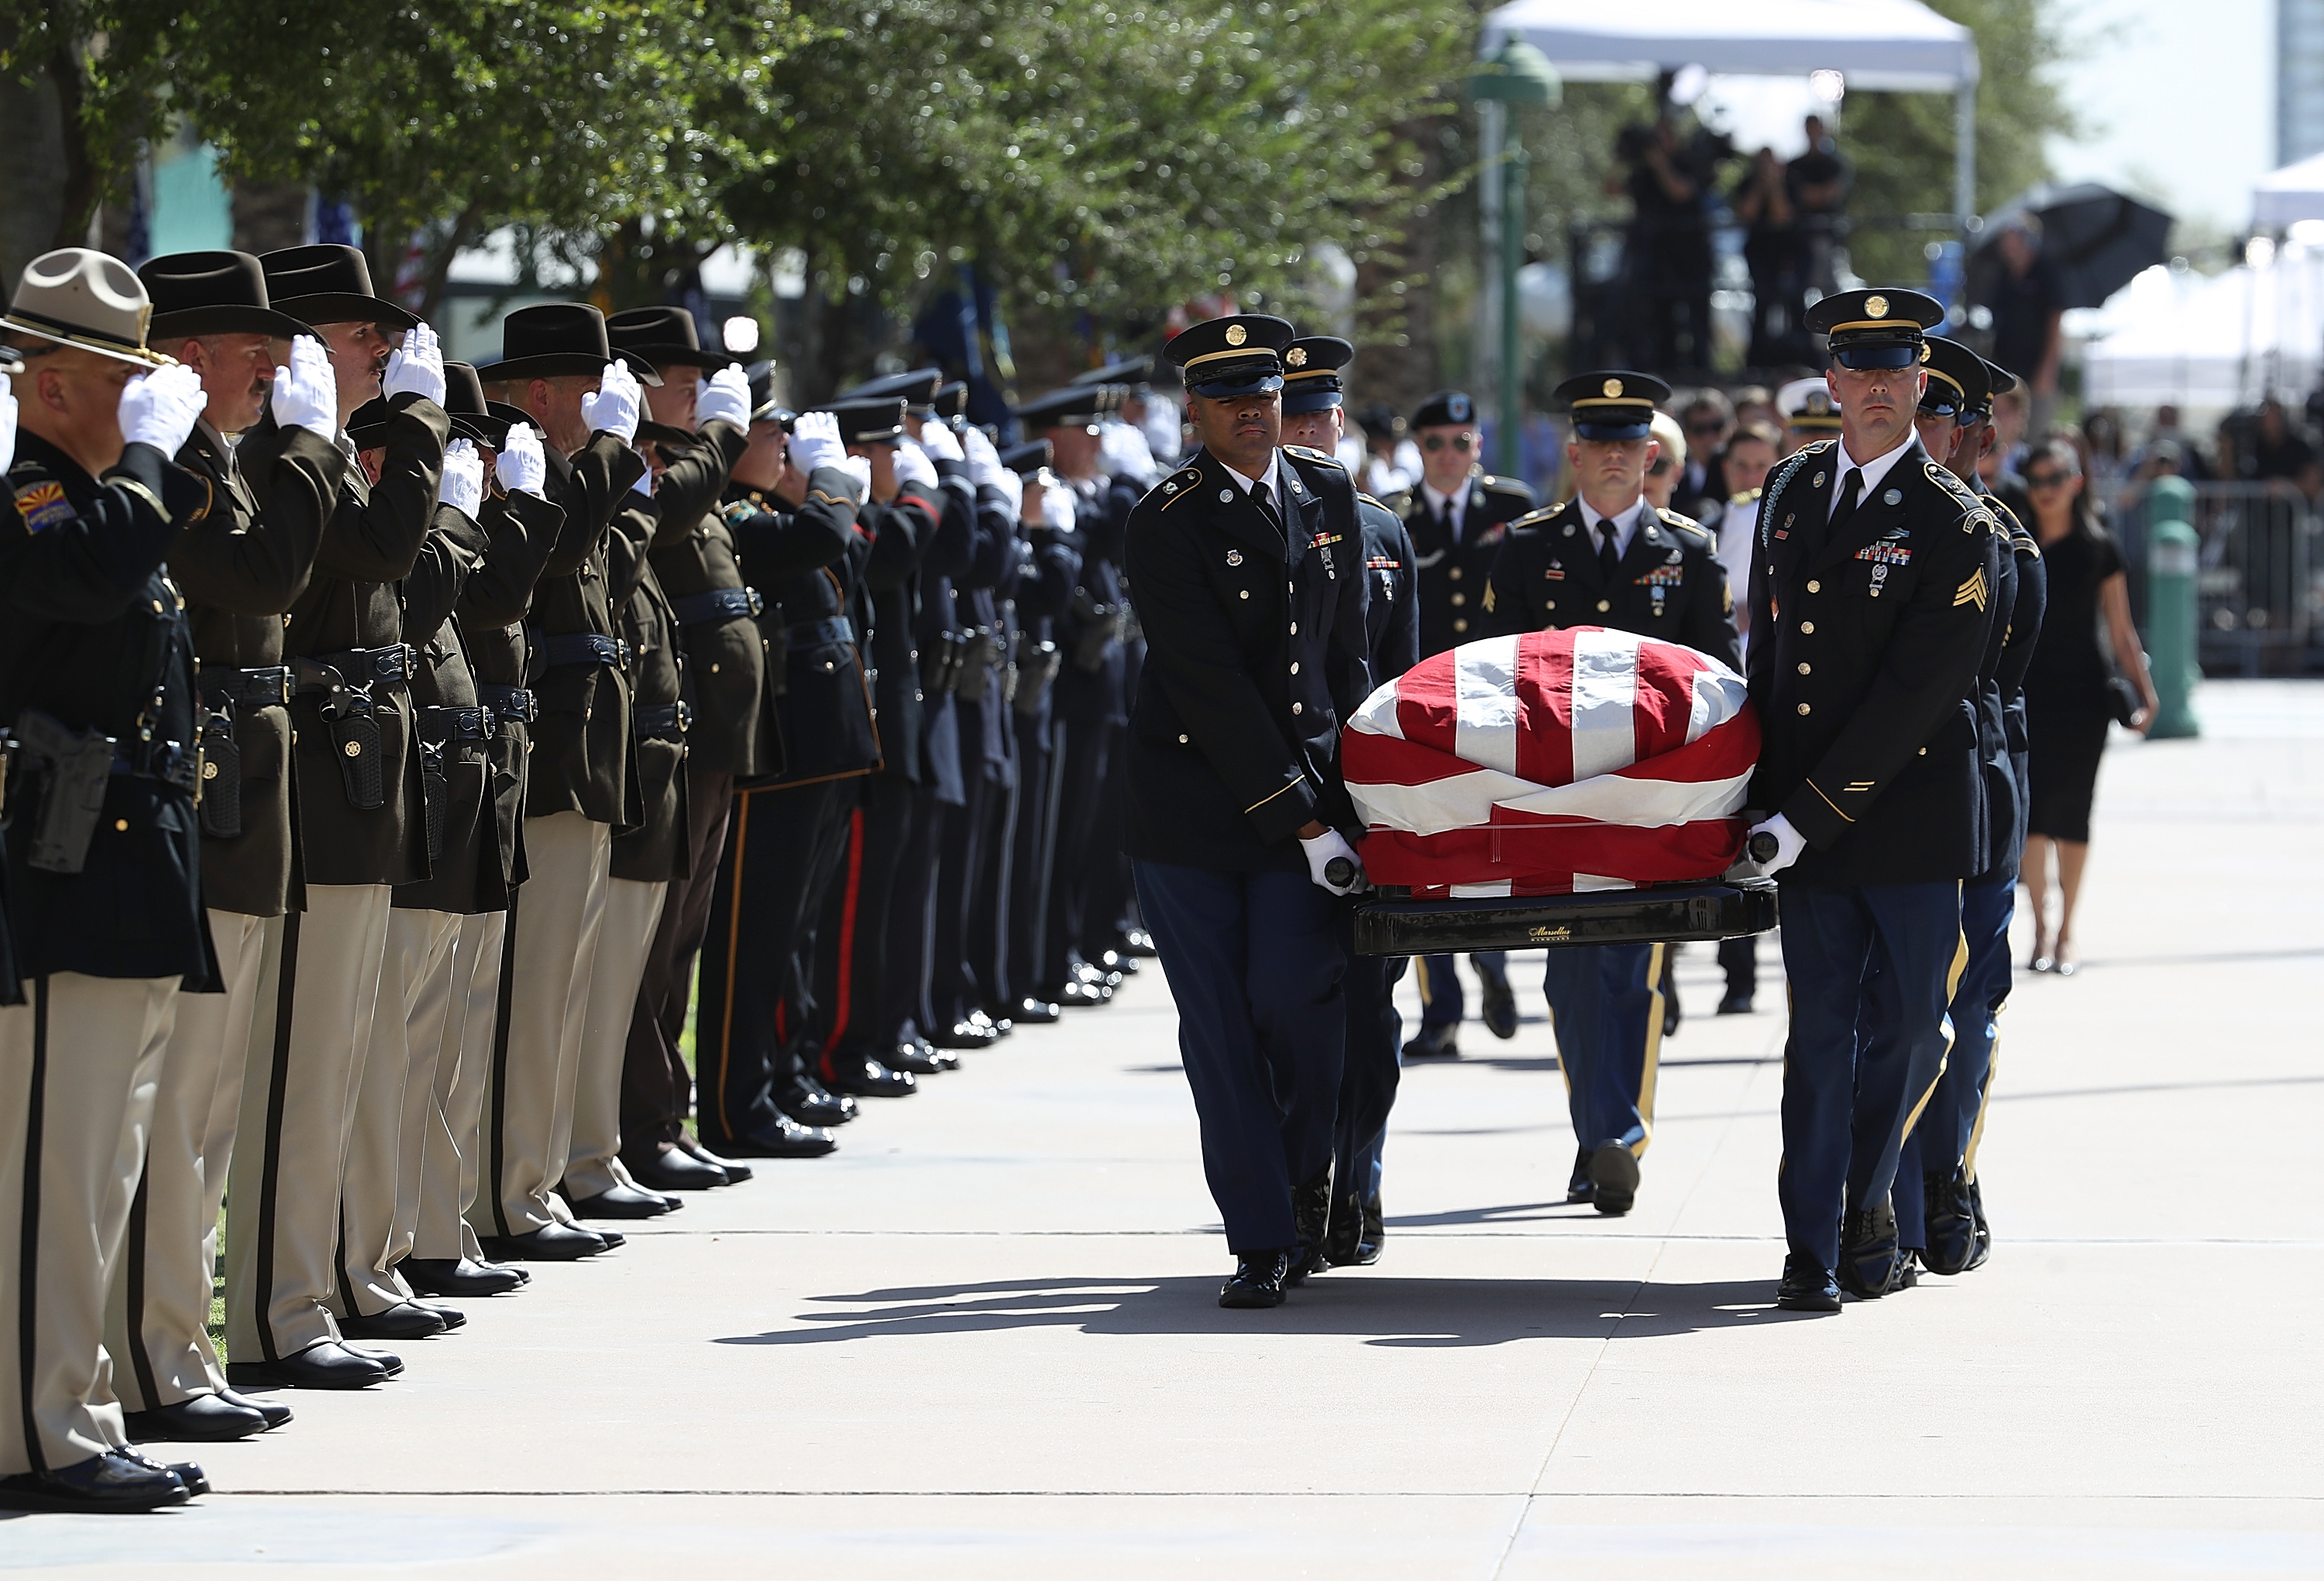 The casket of US Sen John McCain (R-AZ) is carried into the Arizona State Capitol on August 29, 2018 in Phoenix, Arizona. US Sen John McCain will lie in State at the Arizona State Capitol before being transported to Washington DC where he will be buried at the US Naval Academy Cemetery in Annapolis. Sen McCain, a decorated war hero, died August 25 at the age of 81 after a long battle with Glioblastoma, a form of brain cancer.